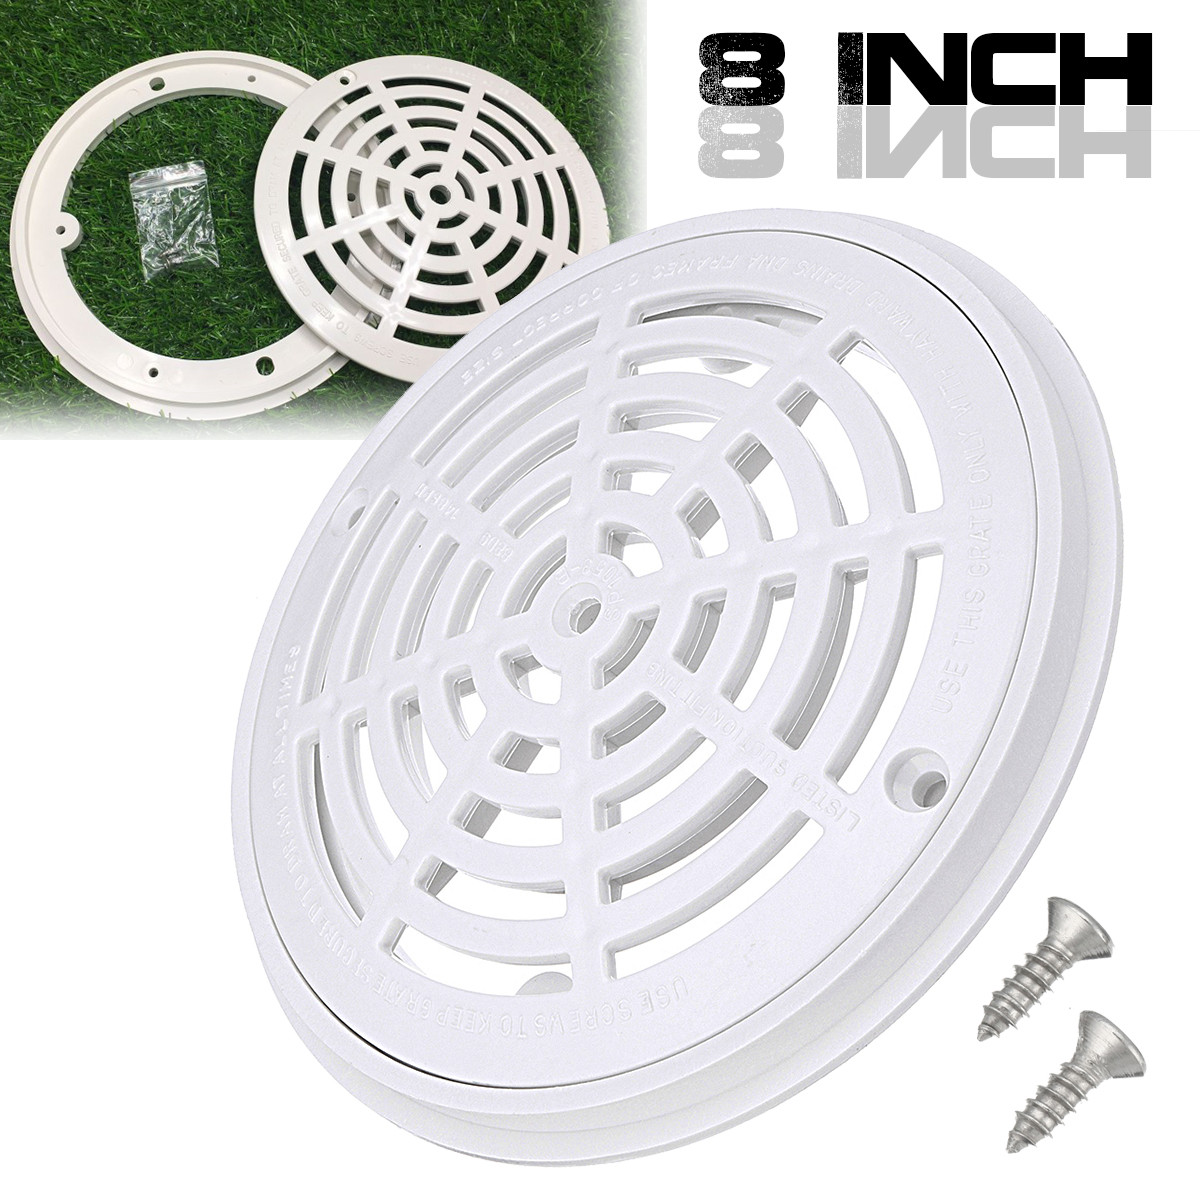 Swimming pool main drain cover 8 inch with 2 screws white - Swimming pool main drain cover replacement ...